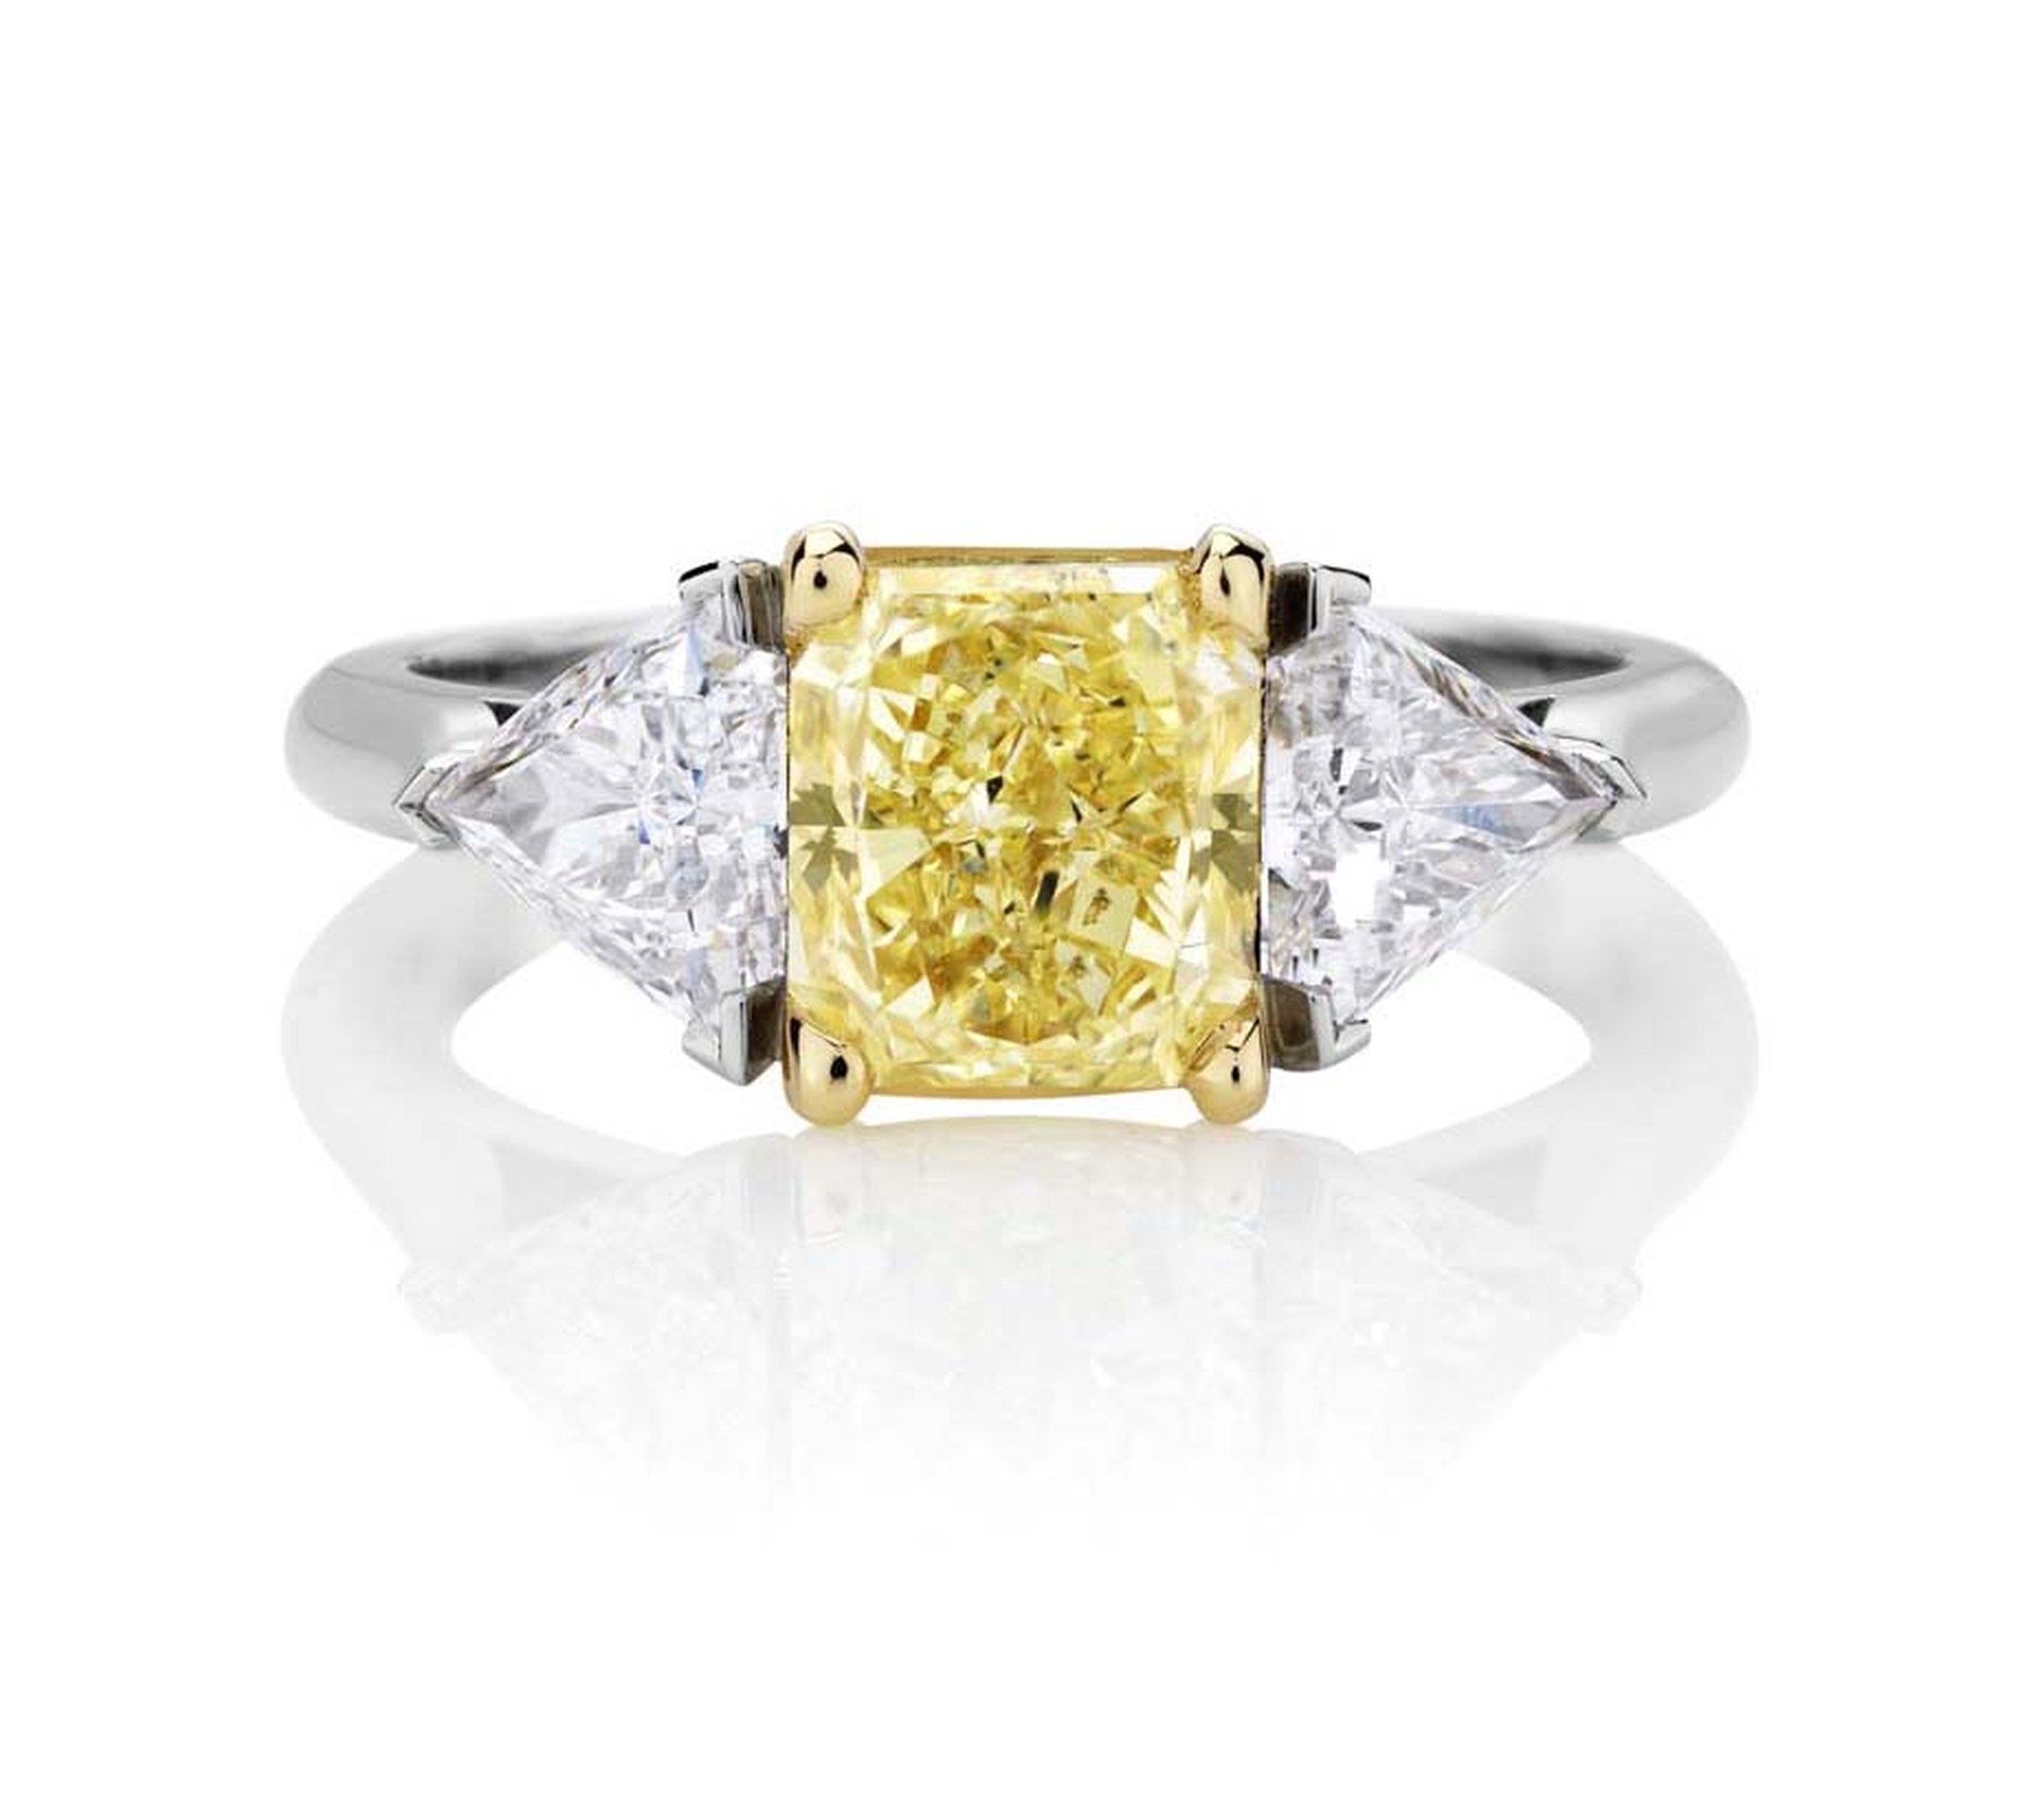 Part of De Beers jewellery's 1888 Master Diamonds collection, this one-of-a-kind three stone engagement ring is set with a 3.93ct Vivid yellow diamond flanked by trilliant-cut diamonds.